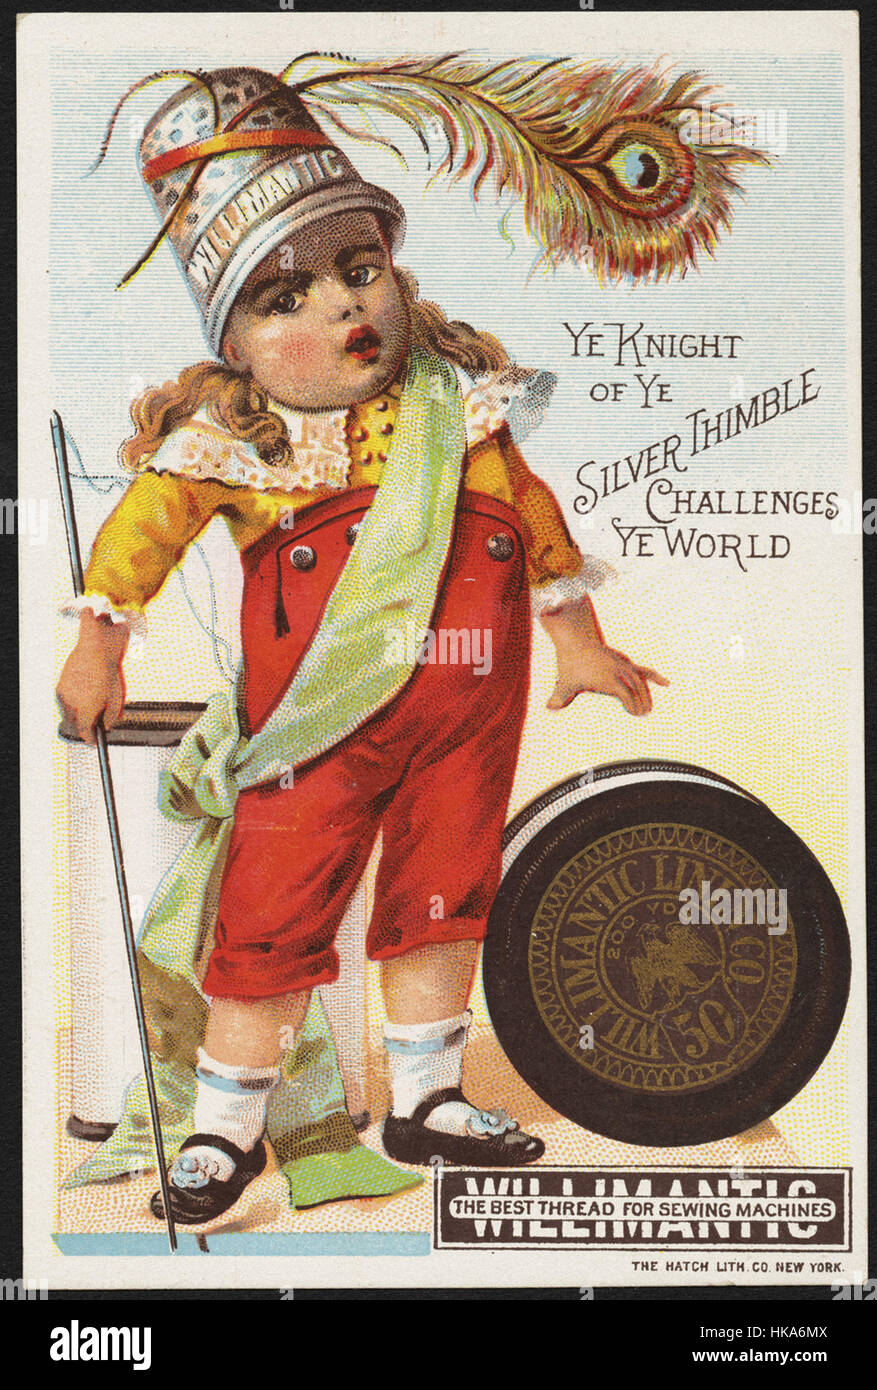 Ye Knight of ye silver thimble challenges ye world, the best thread for sewing machines - Stock Image